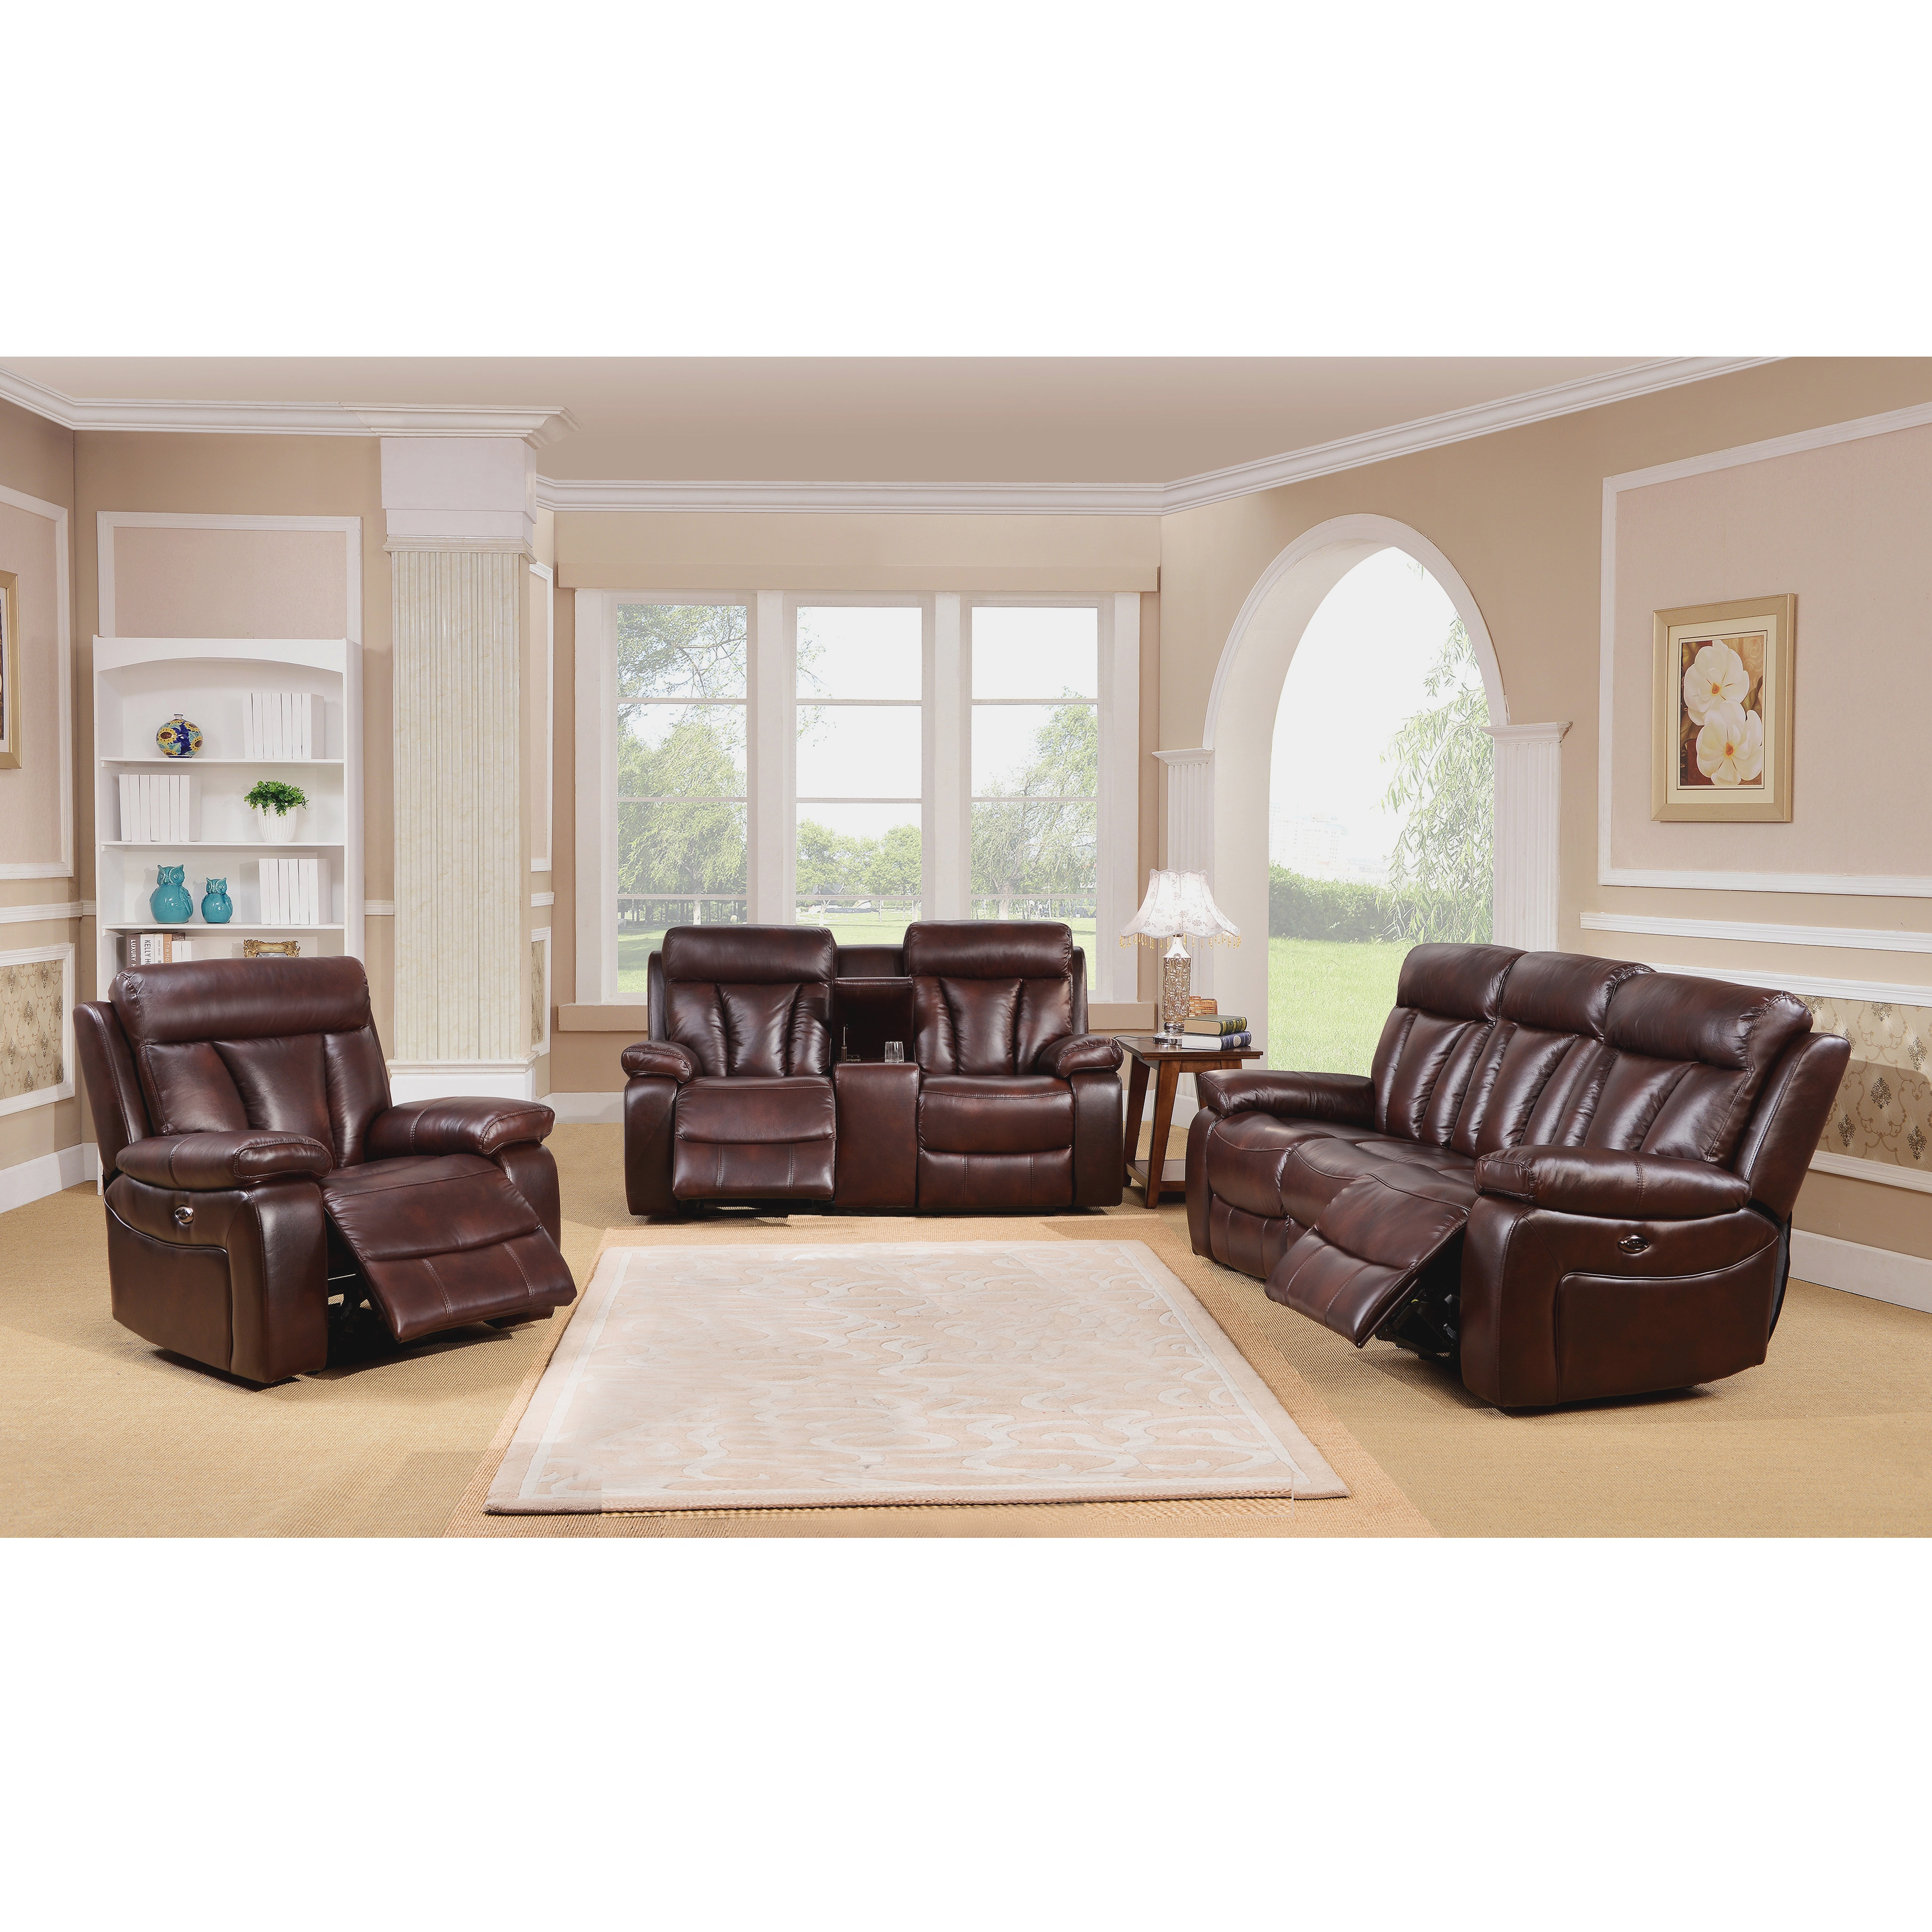 Zenith Brown Top Grain Leather Power Motorized Lay flat Reclining